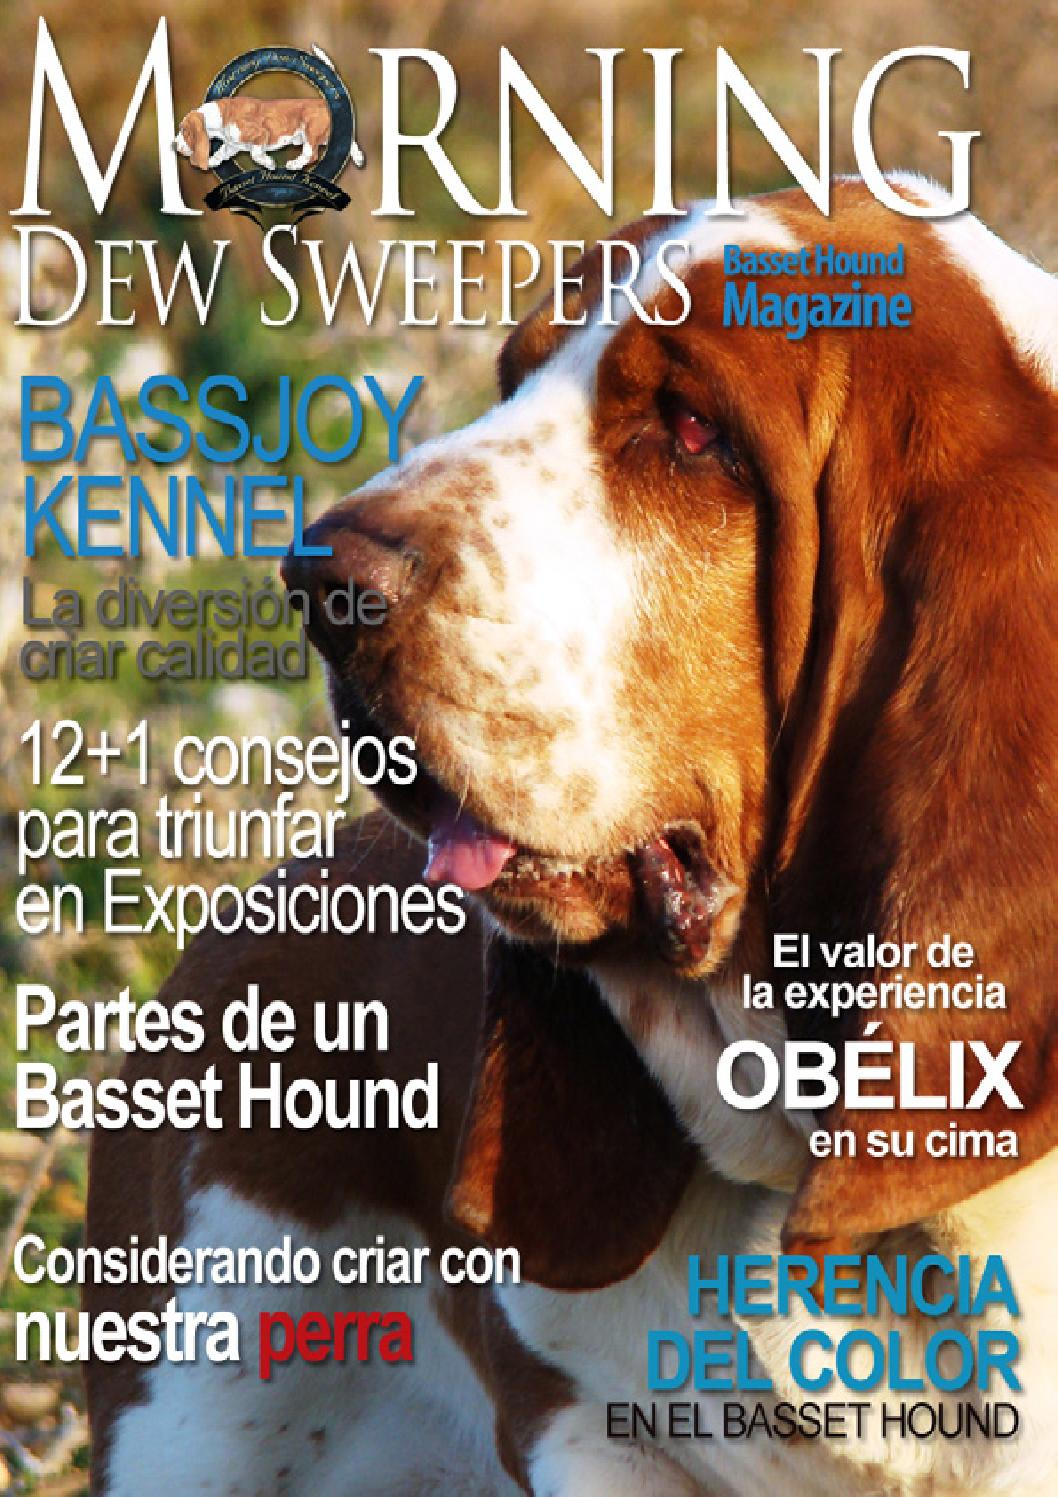 Morning Dew Sweepers Basset Hound Magazine número 1 en español by ...